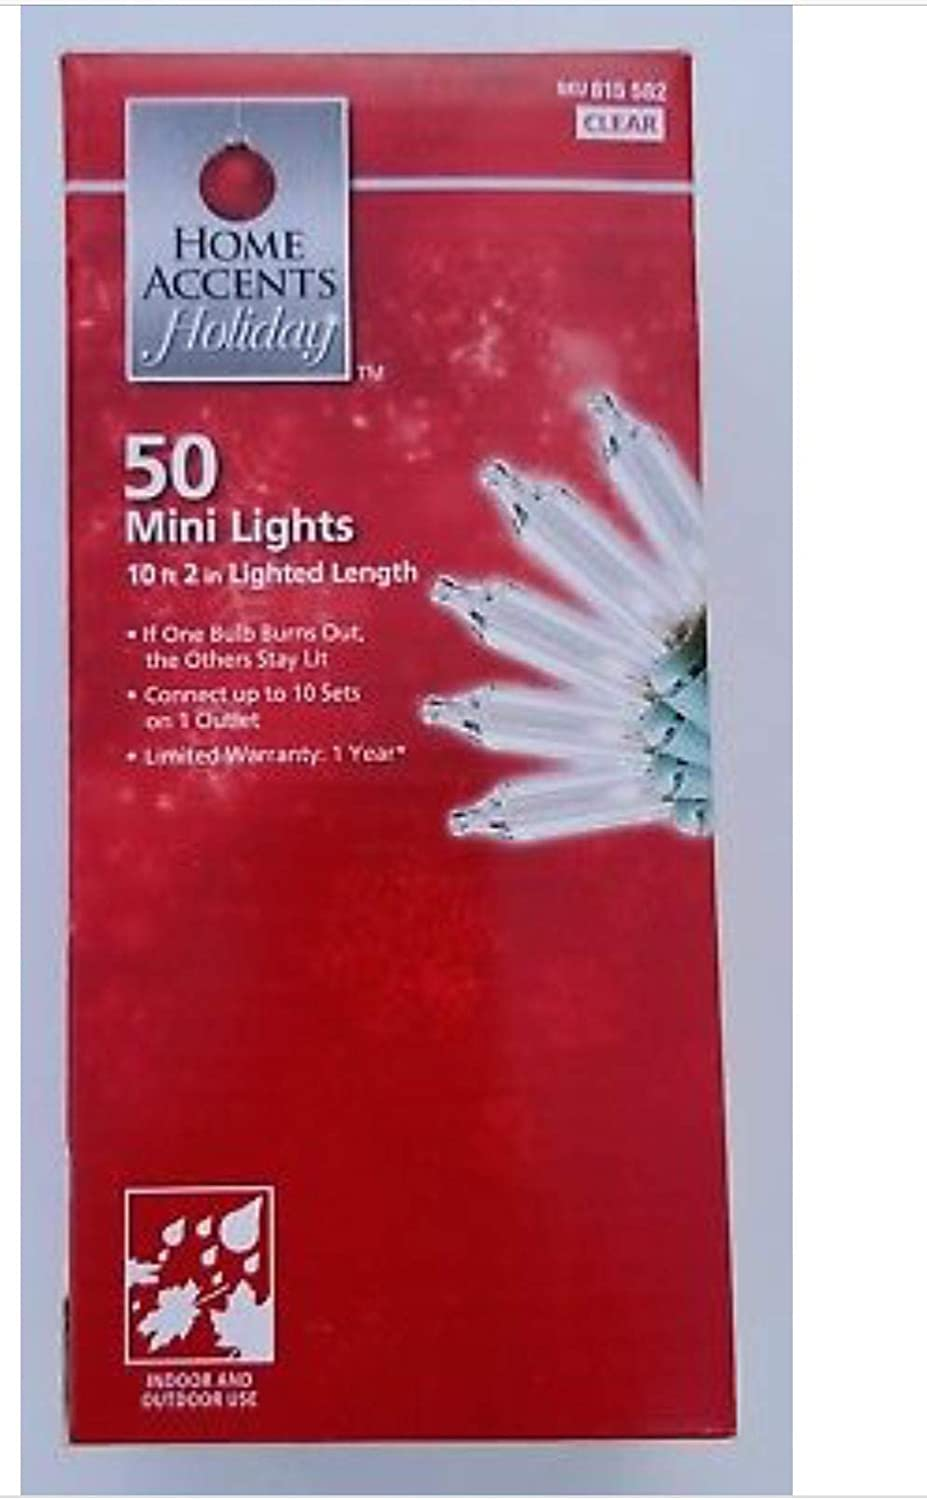 Home Accents Holiday 50-mini Lights, Clear String Lights w/Green Wire (2-pack) by Home Accents